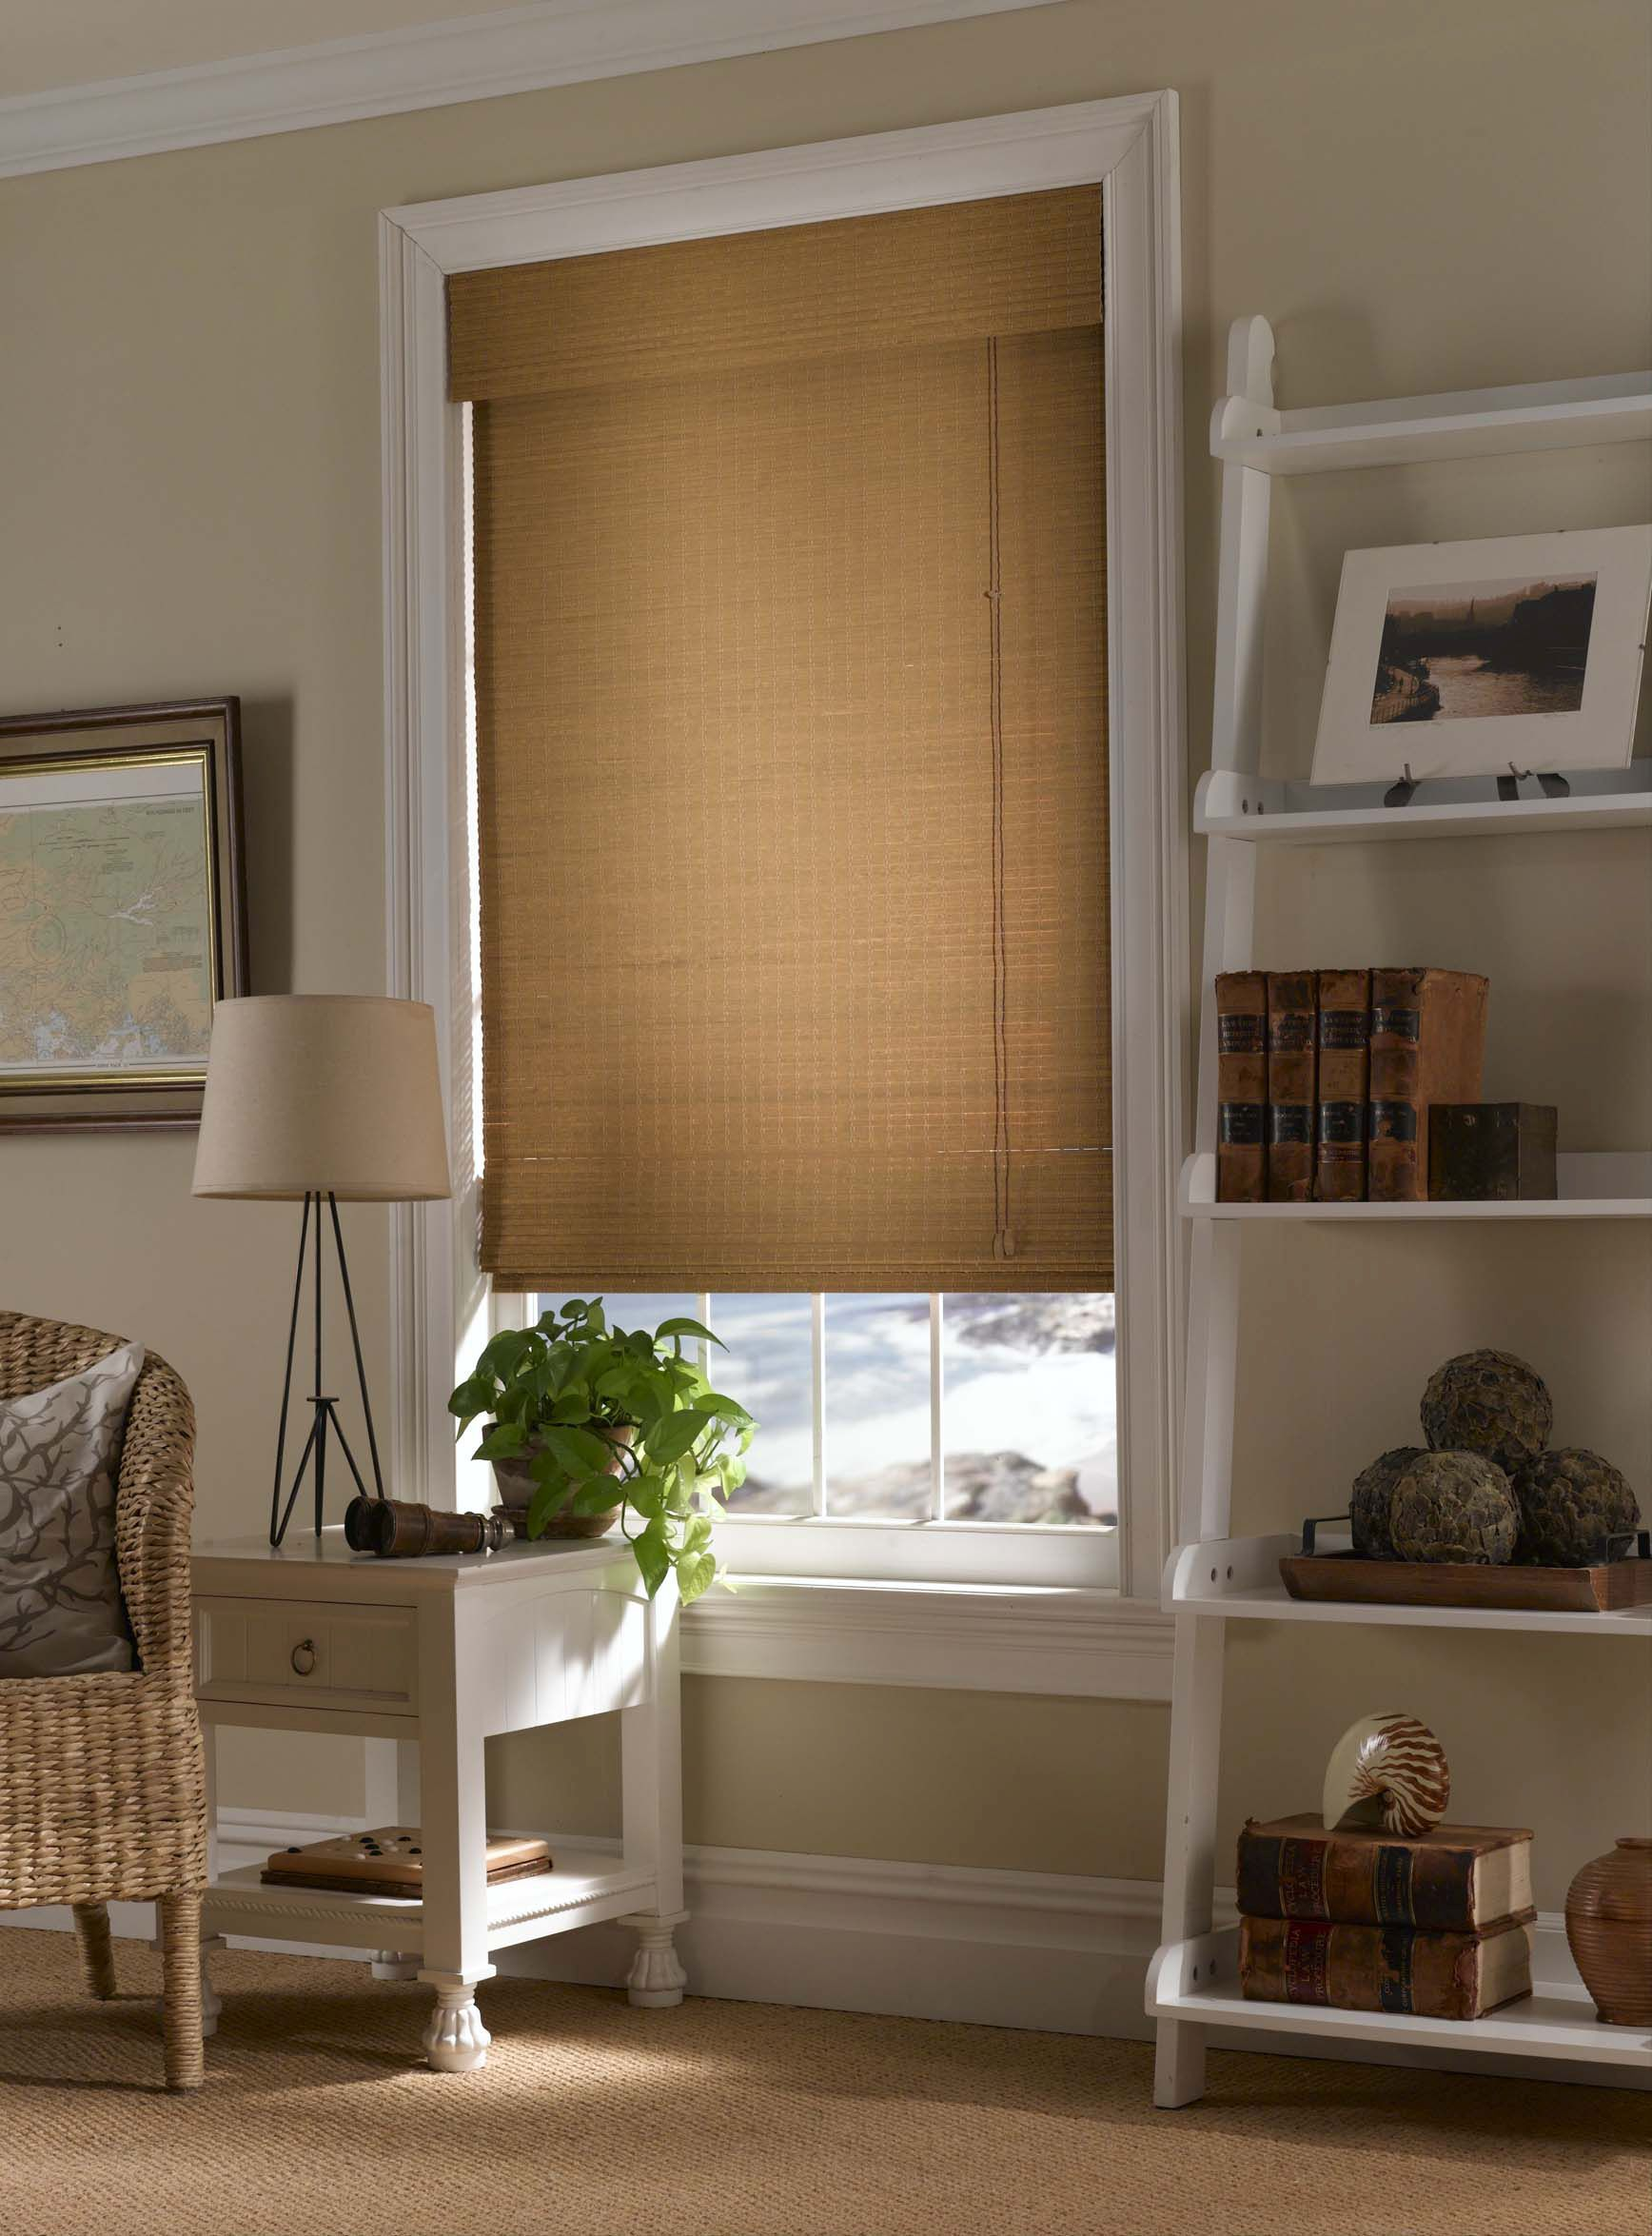 of levolor blinds design window reviews beautiful blind vertical slats depot interior replacement home